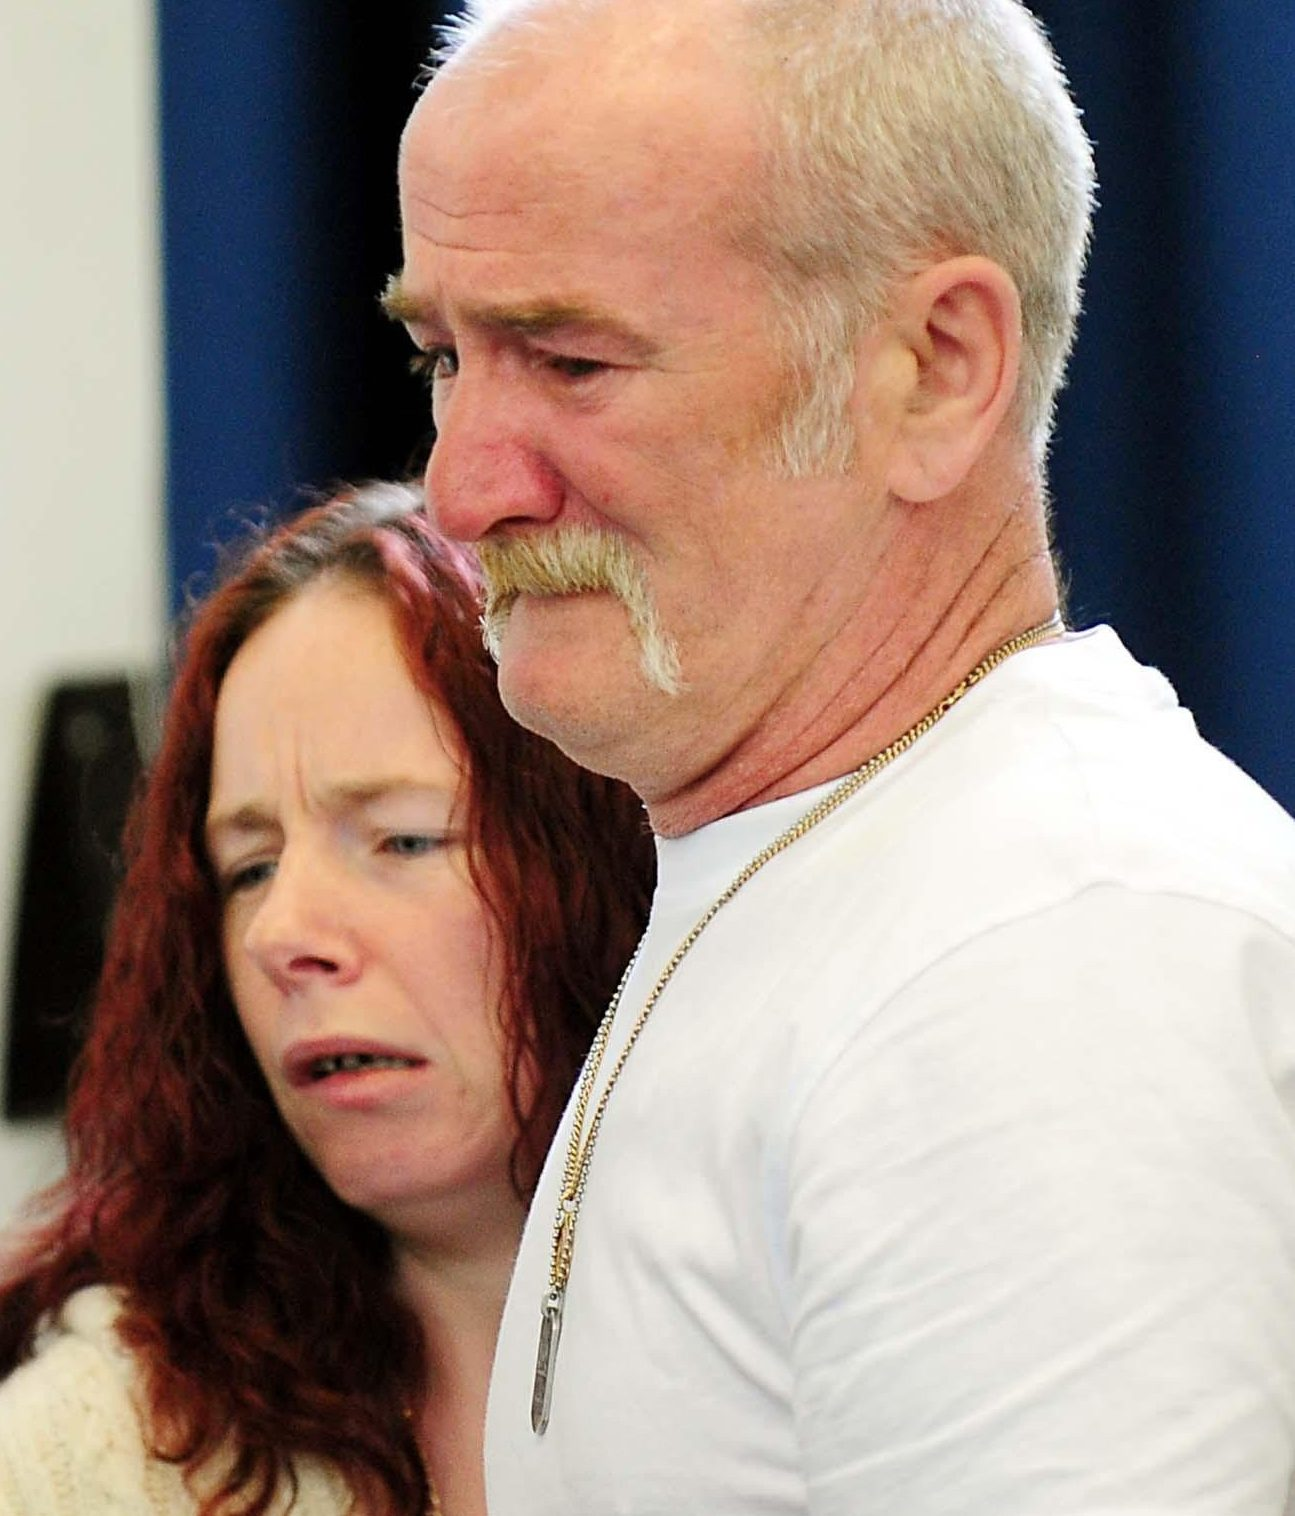 Mick Philpott and wife Mairead speak to the media at Derby Conference Centre, Derby following a fire at their home last week which claimed the lives of six of his children.